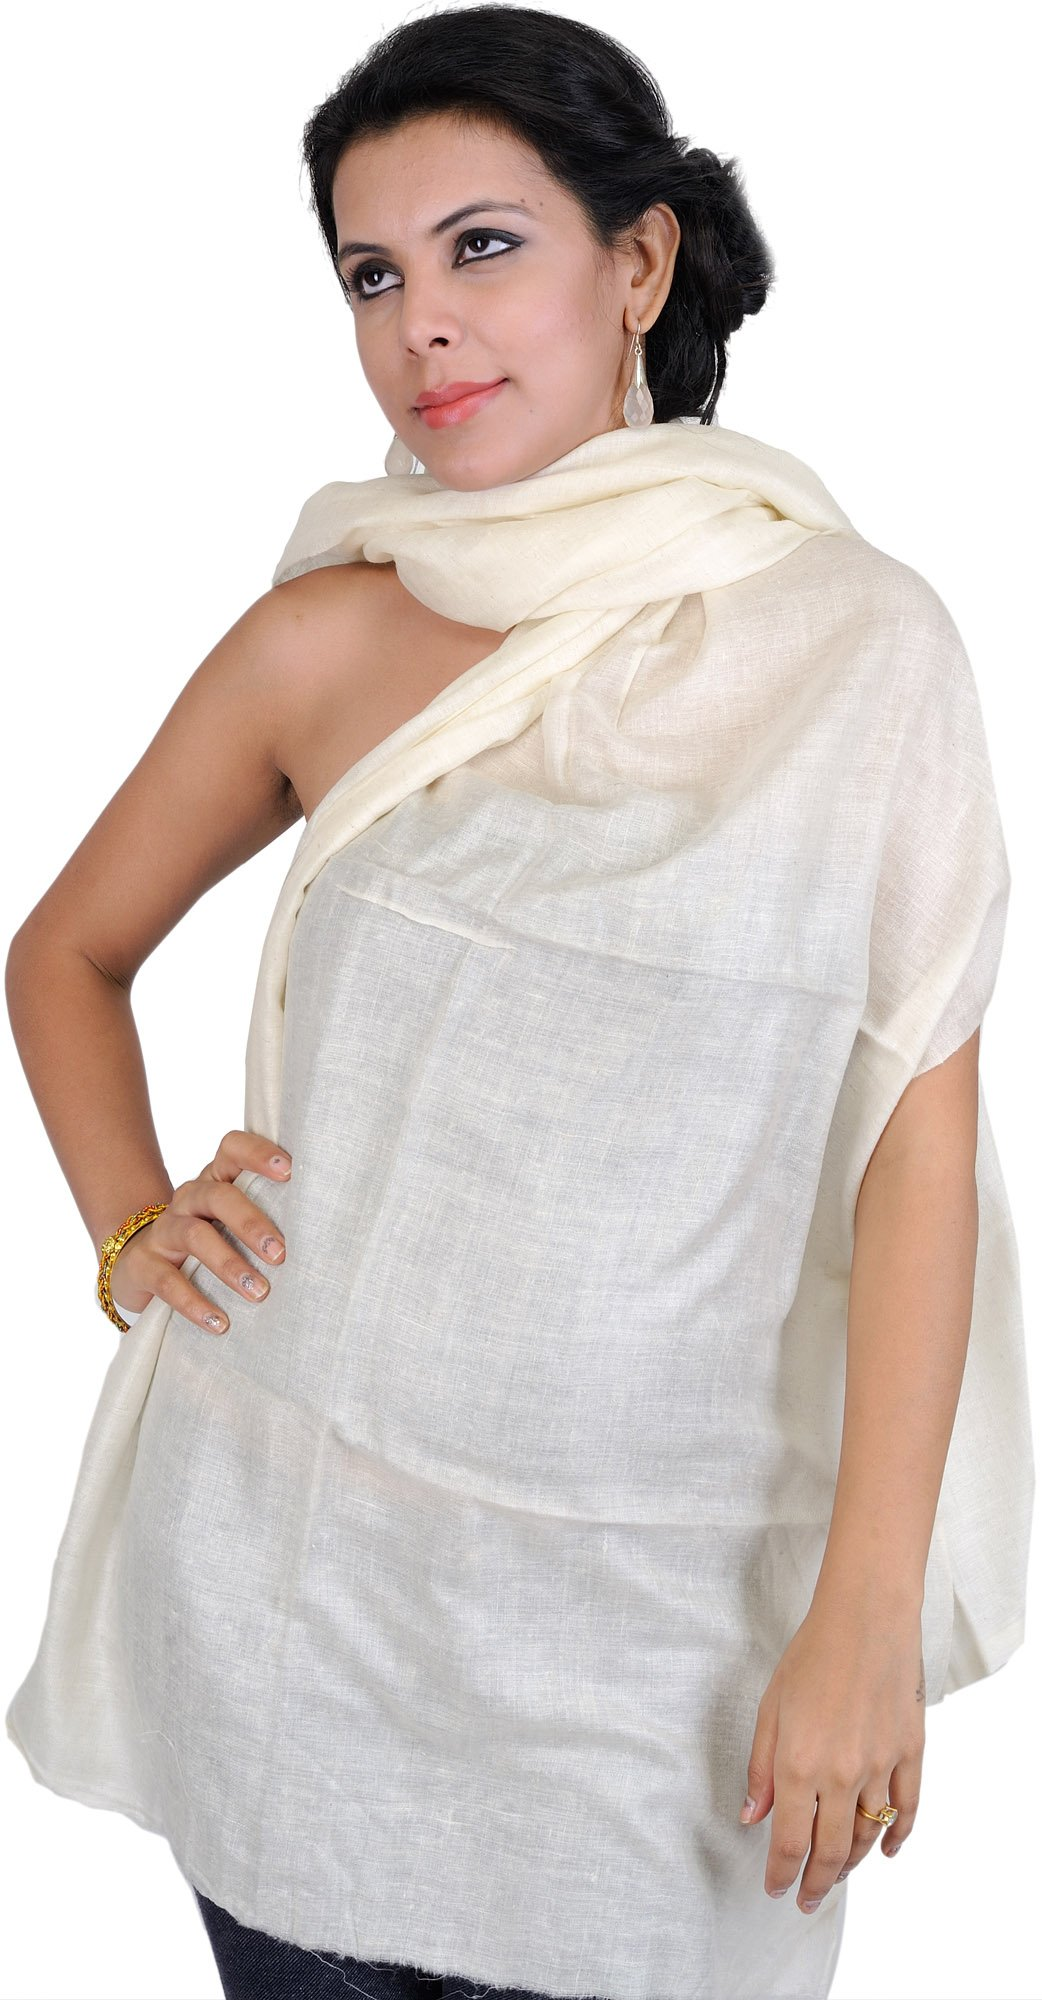 Exotic India Plain Stole as an Imitation of Shahtoosh, - Color Ivory